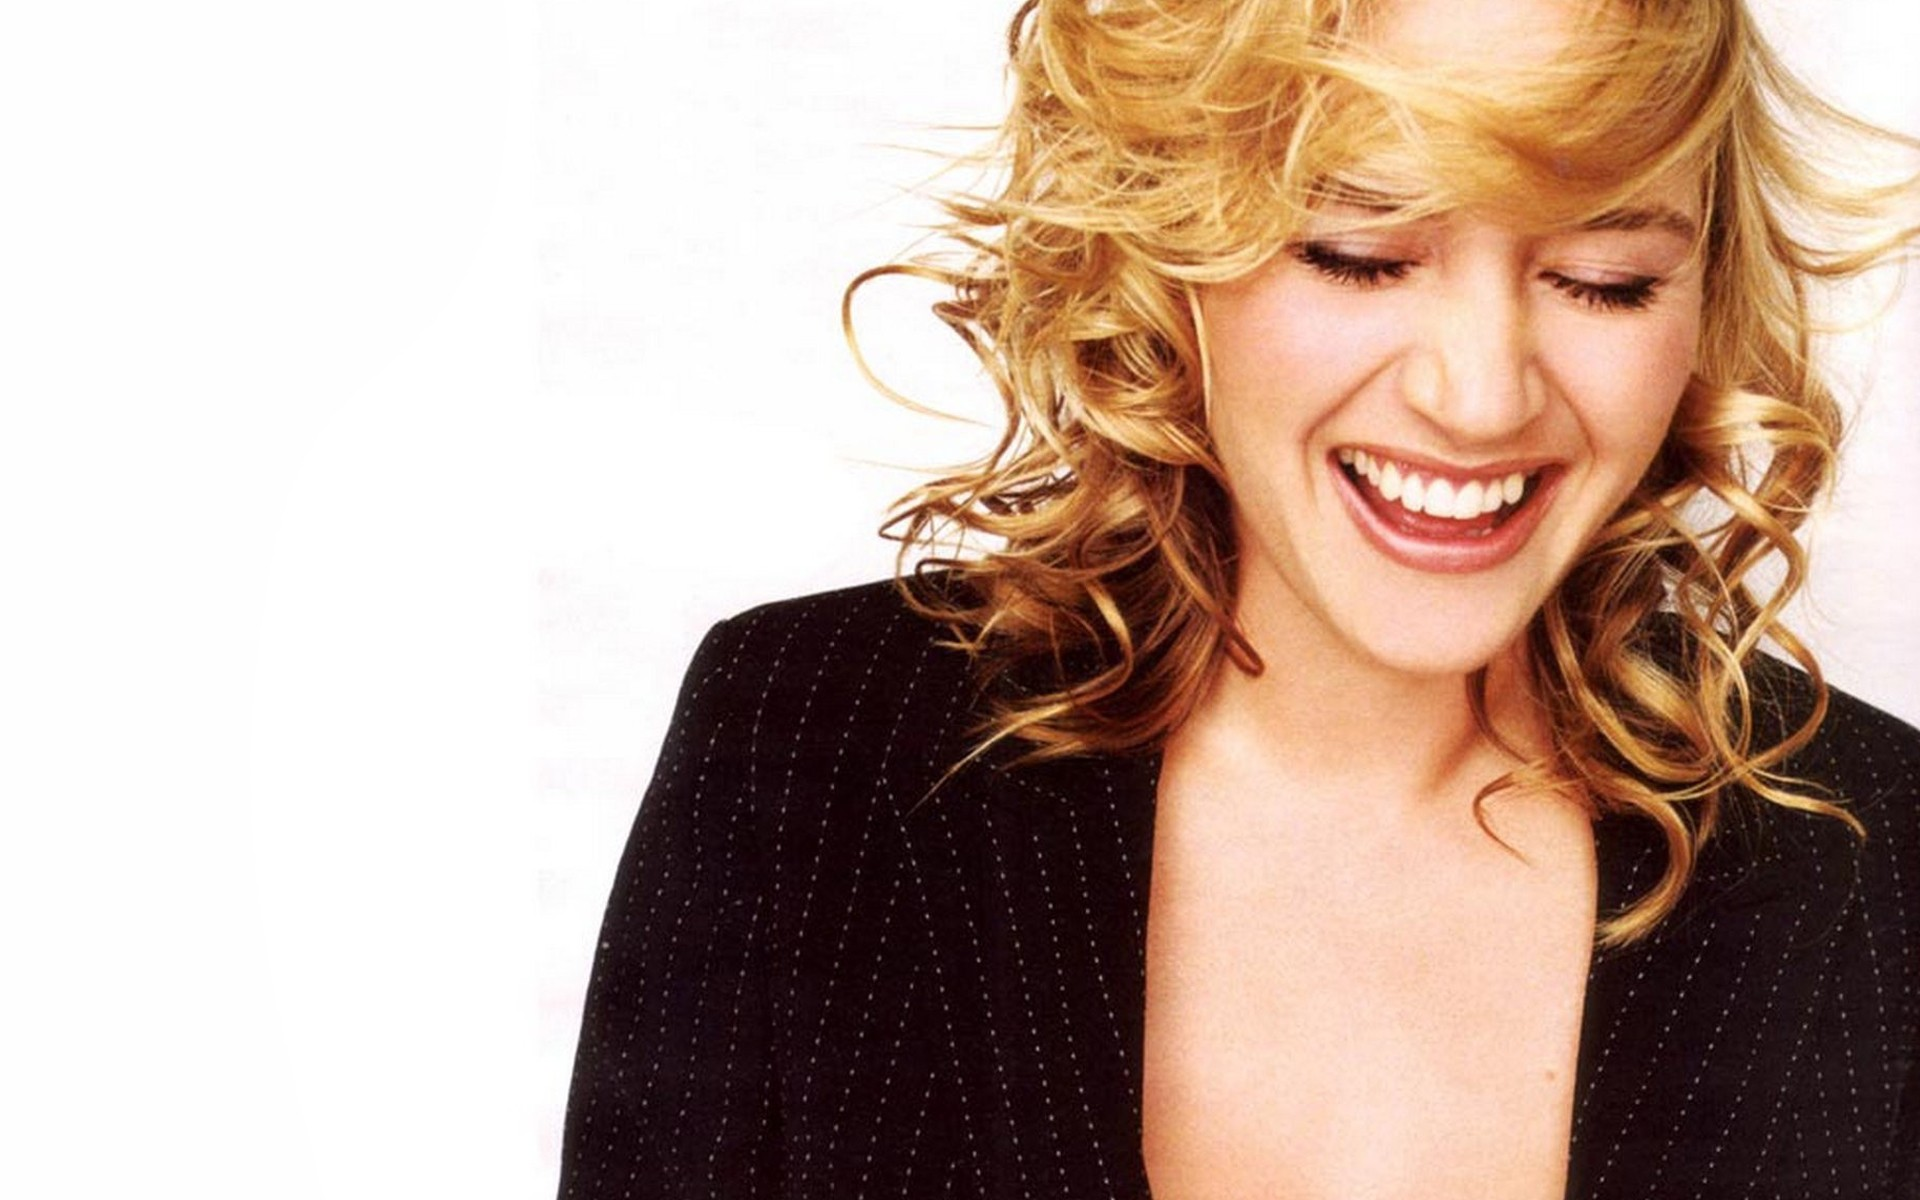 1920x1200 - Kate Winslet Wallpapers 21